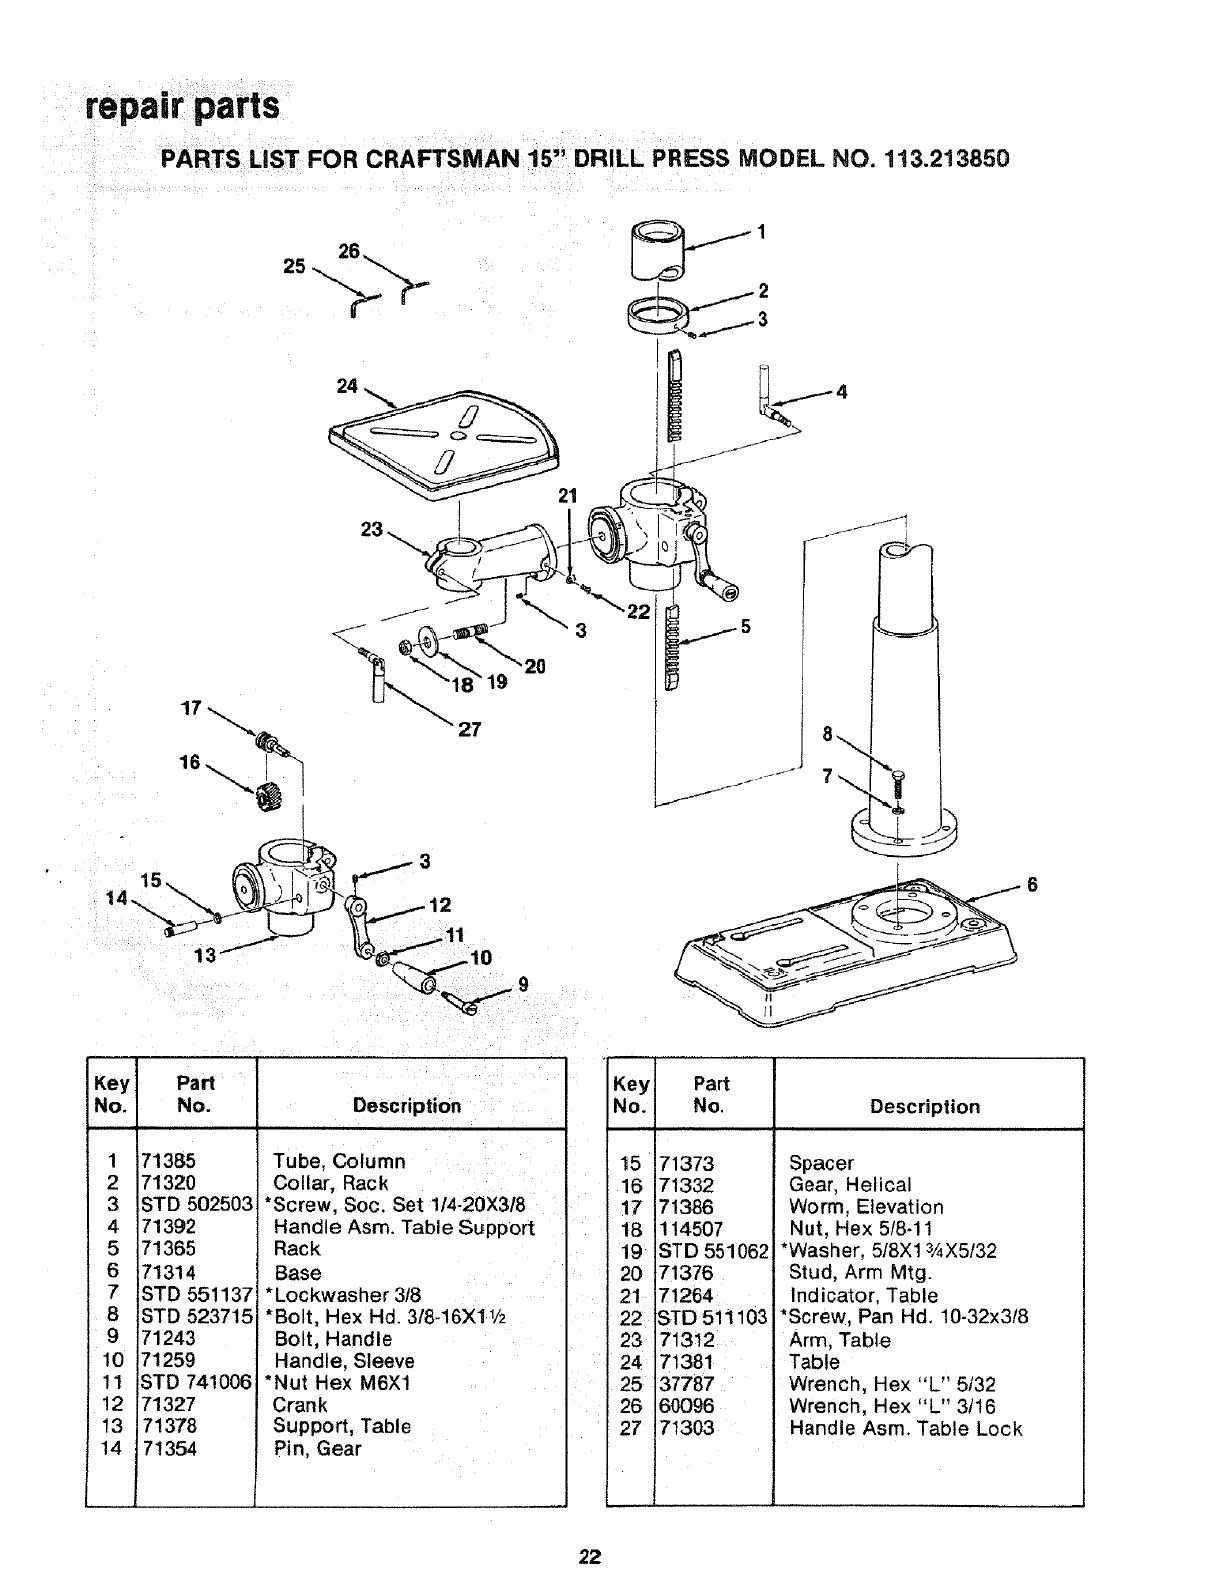 Craftsman 113213850 User Manual 15 Inch Drill Press Manuals And Locking Circuit Board Support Spacer From Reliable Repairpa Ts